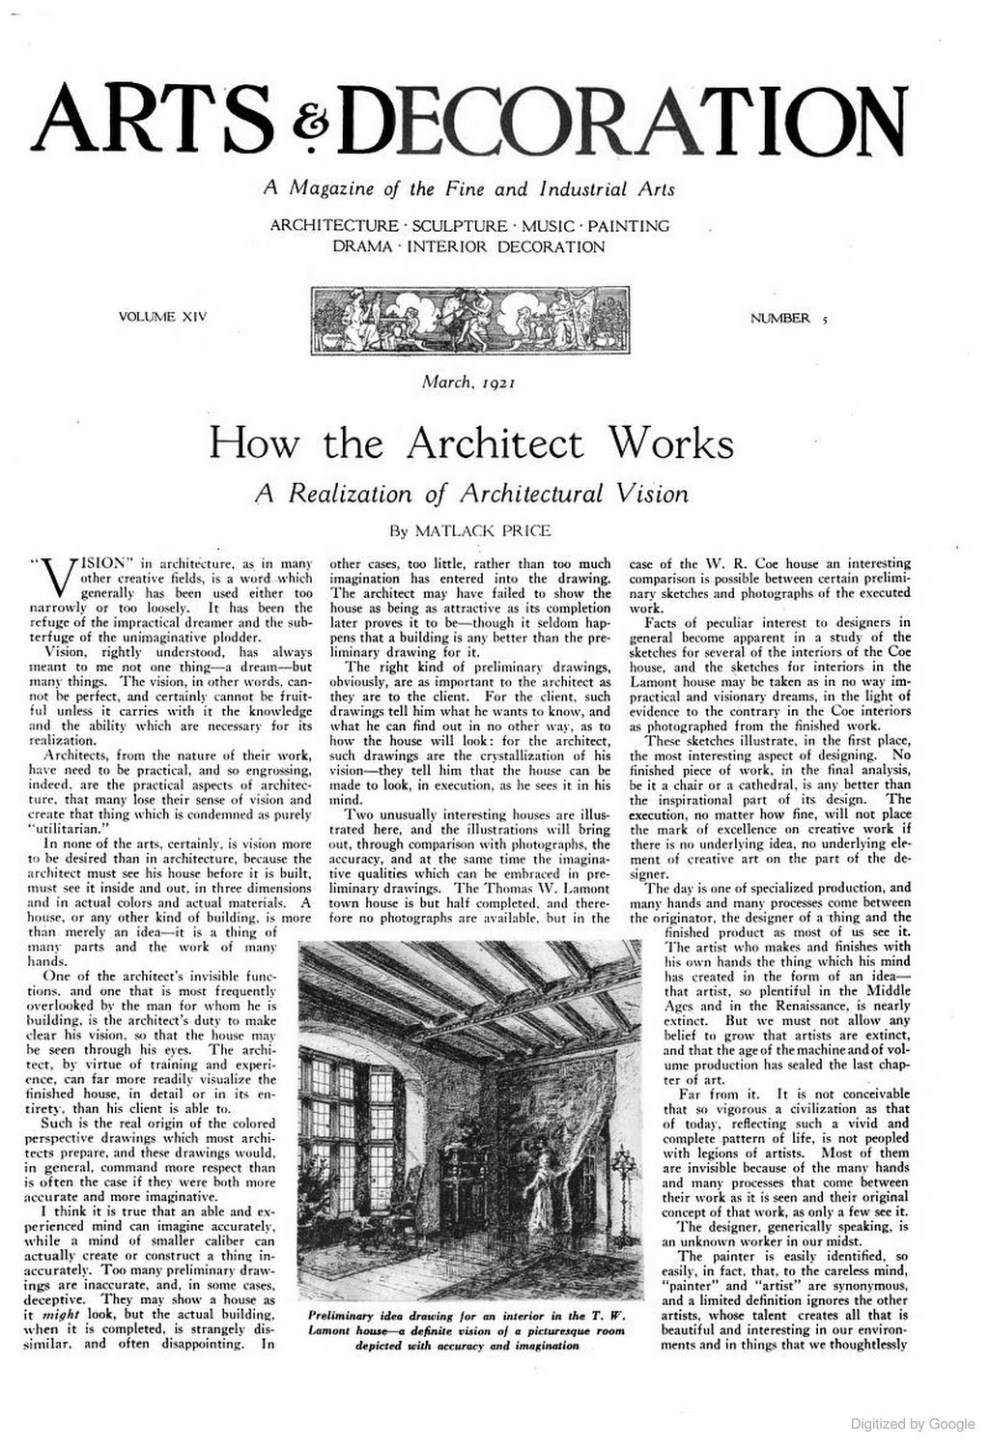 """Arts & Decoration, New York, NY, """"How the Architect Works: A Realization of Architectural Vision"""" by Matlack Price, Volume 14, Number 5, March, 1921, illustrated: b&w on page 360"""